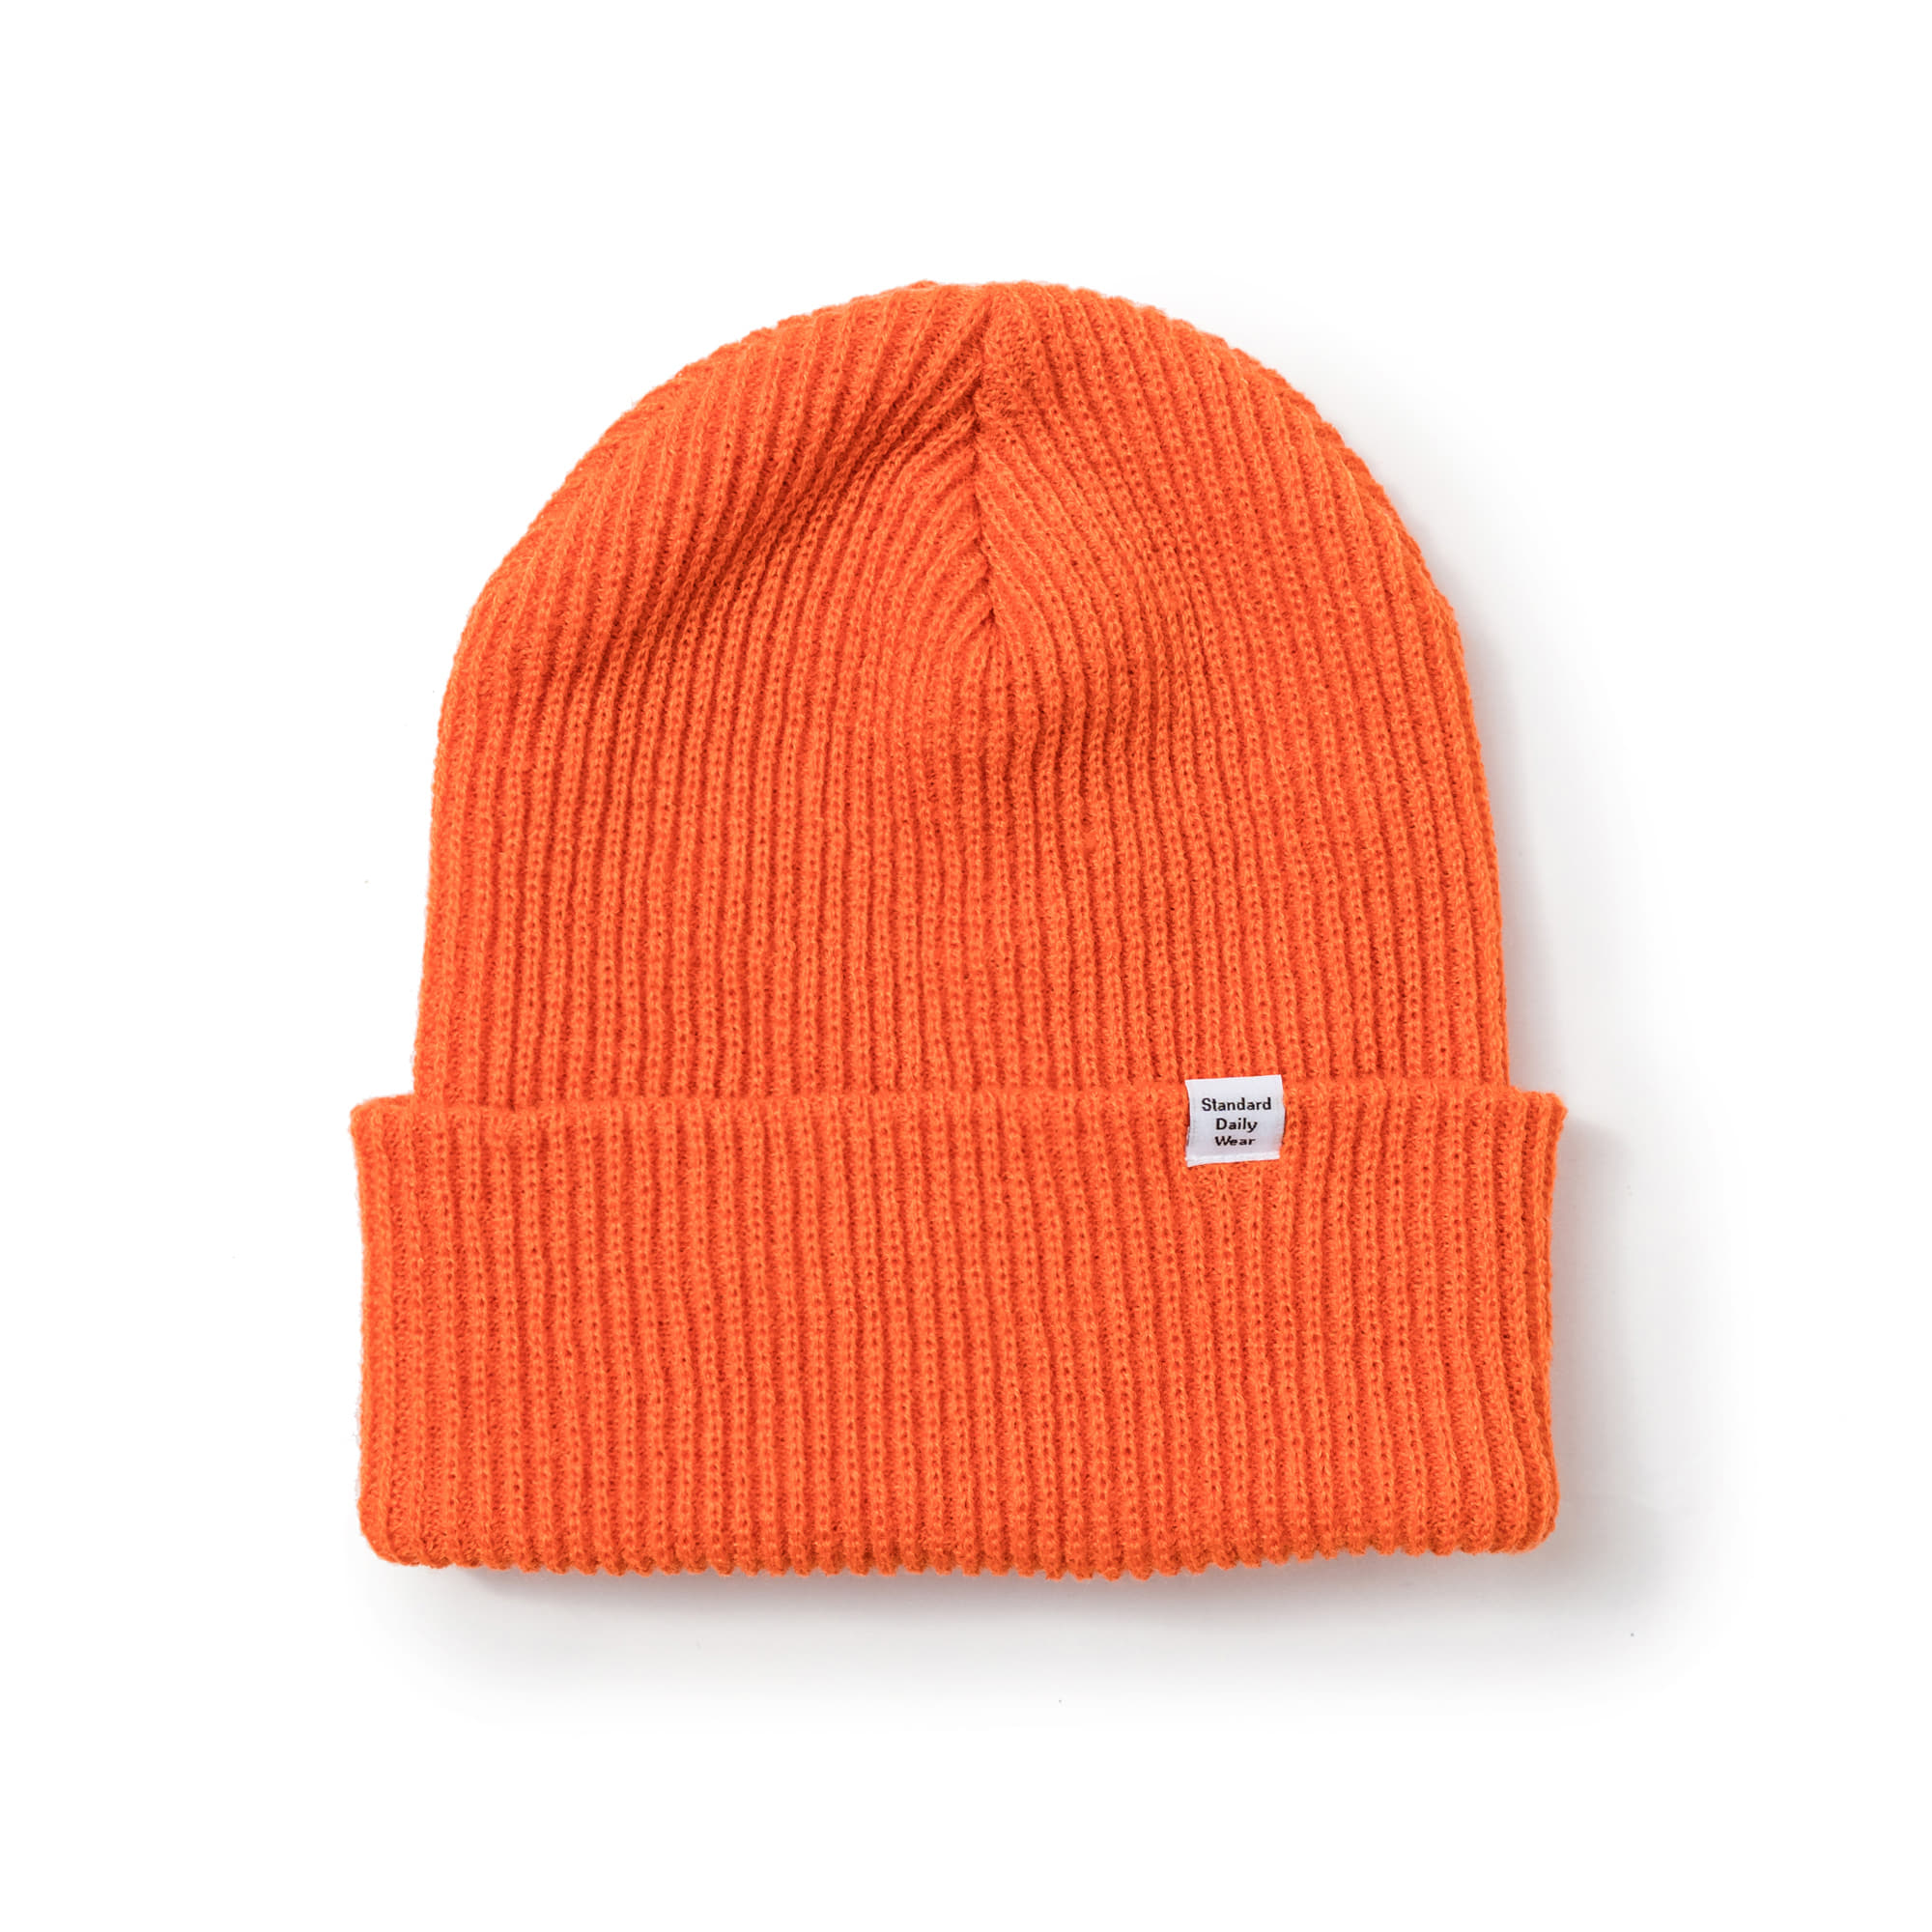 SDW BEANIE ORANGE